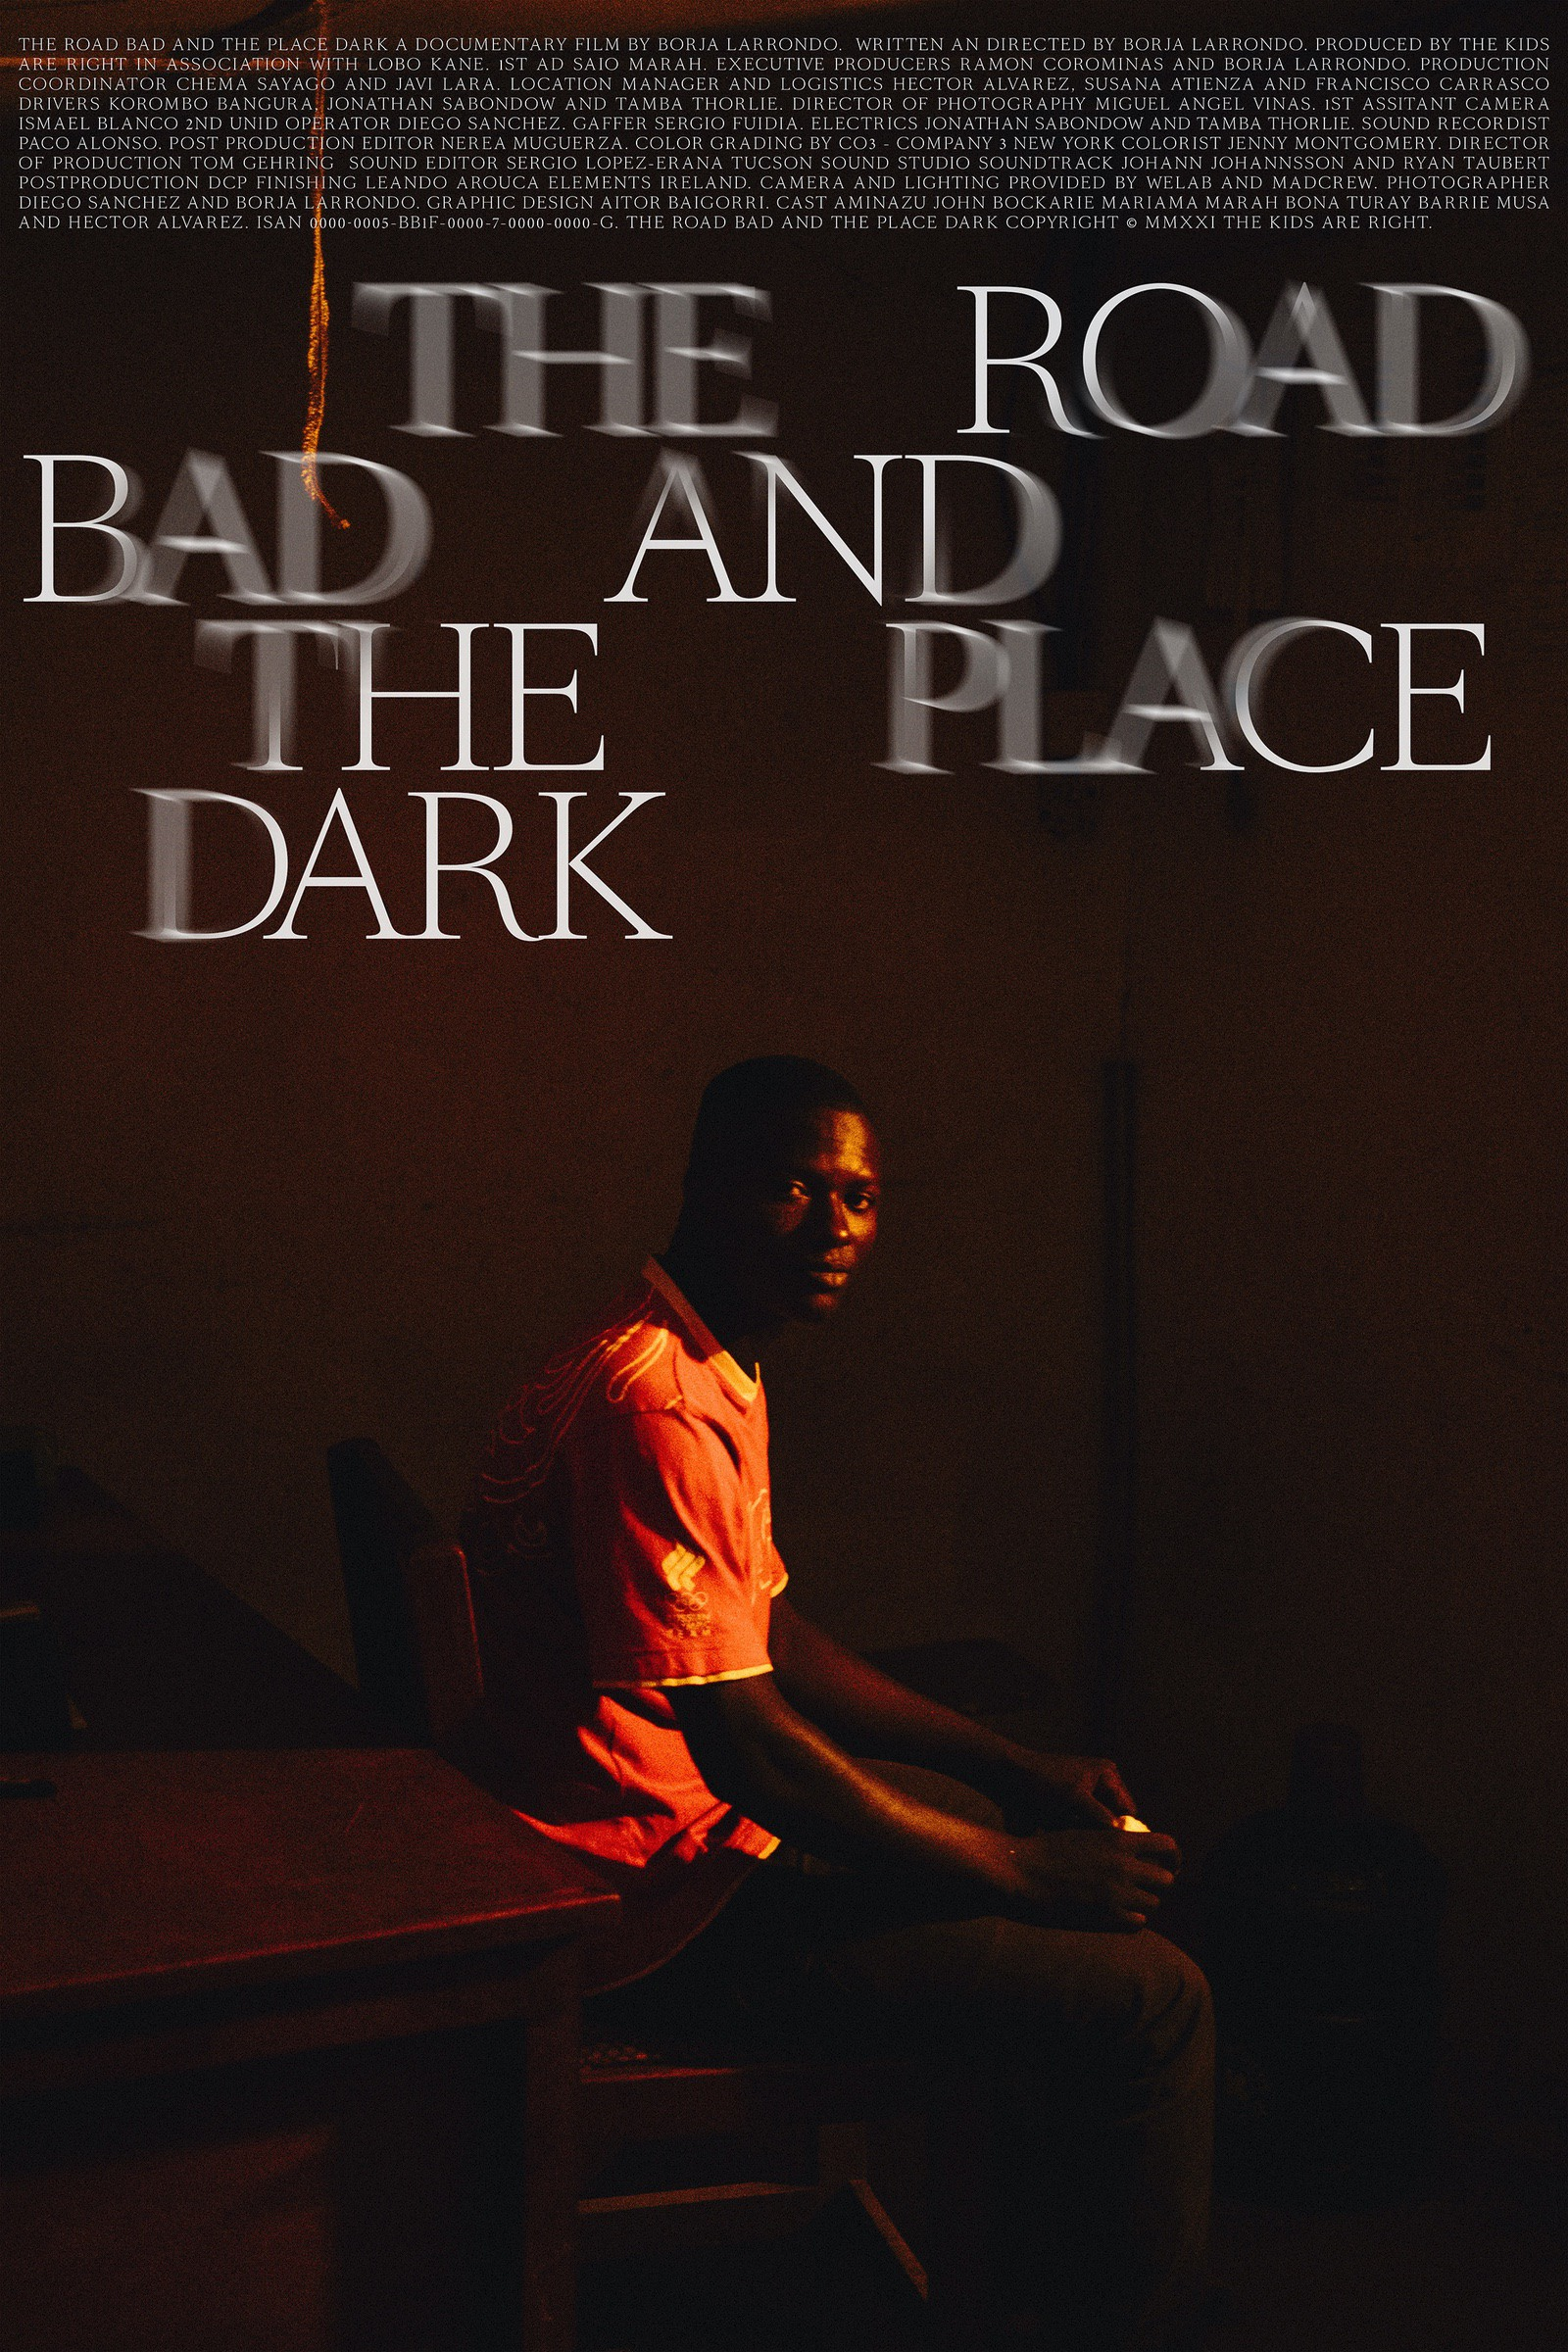 The road bad and the place dark